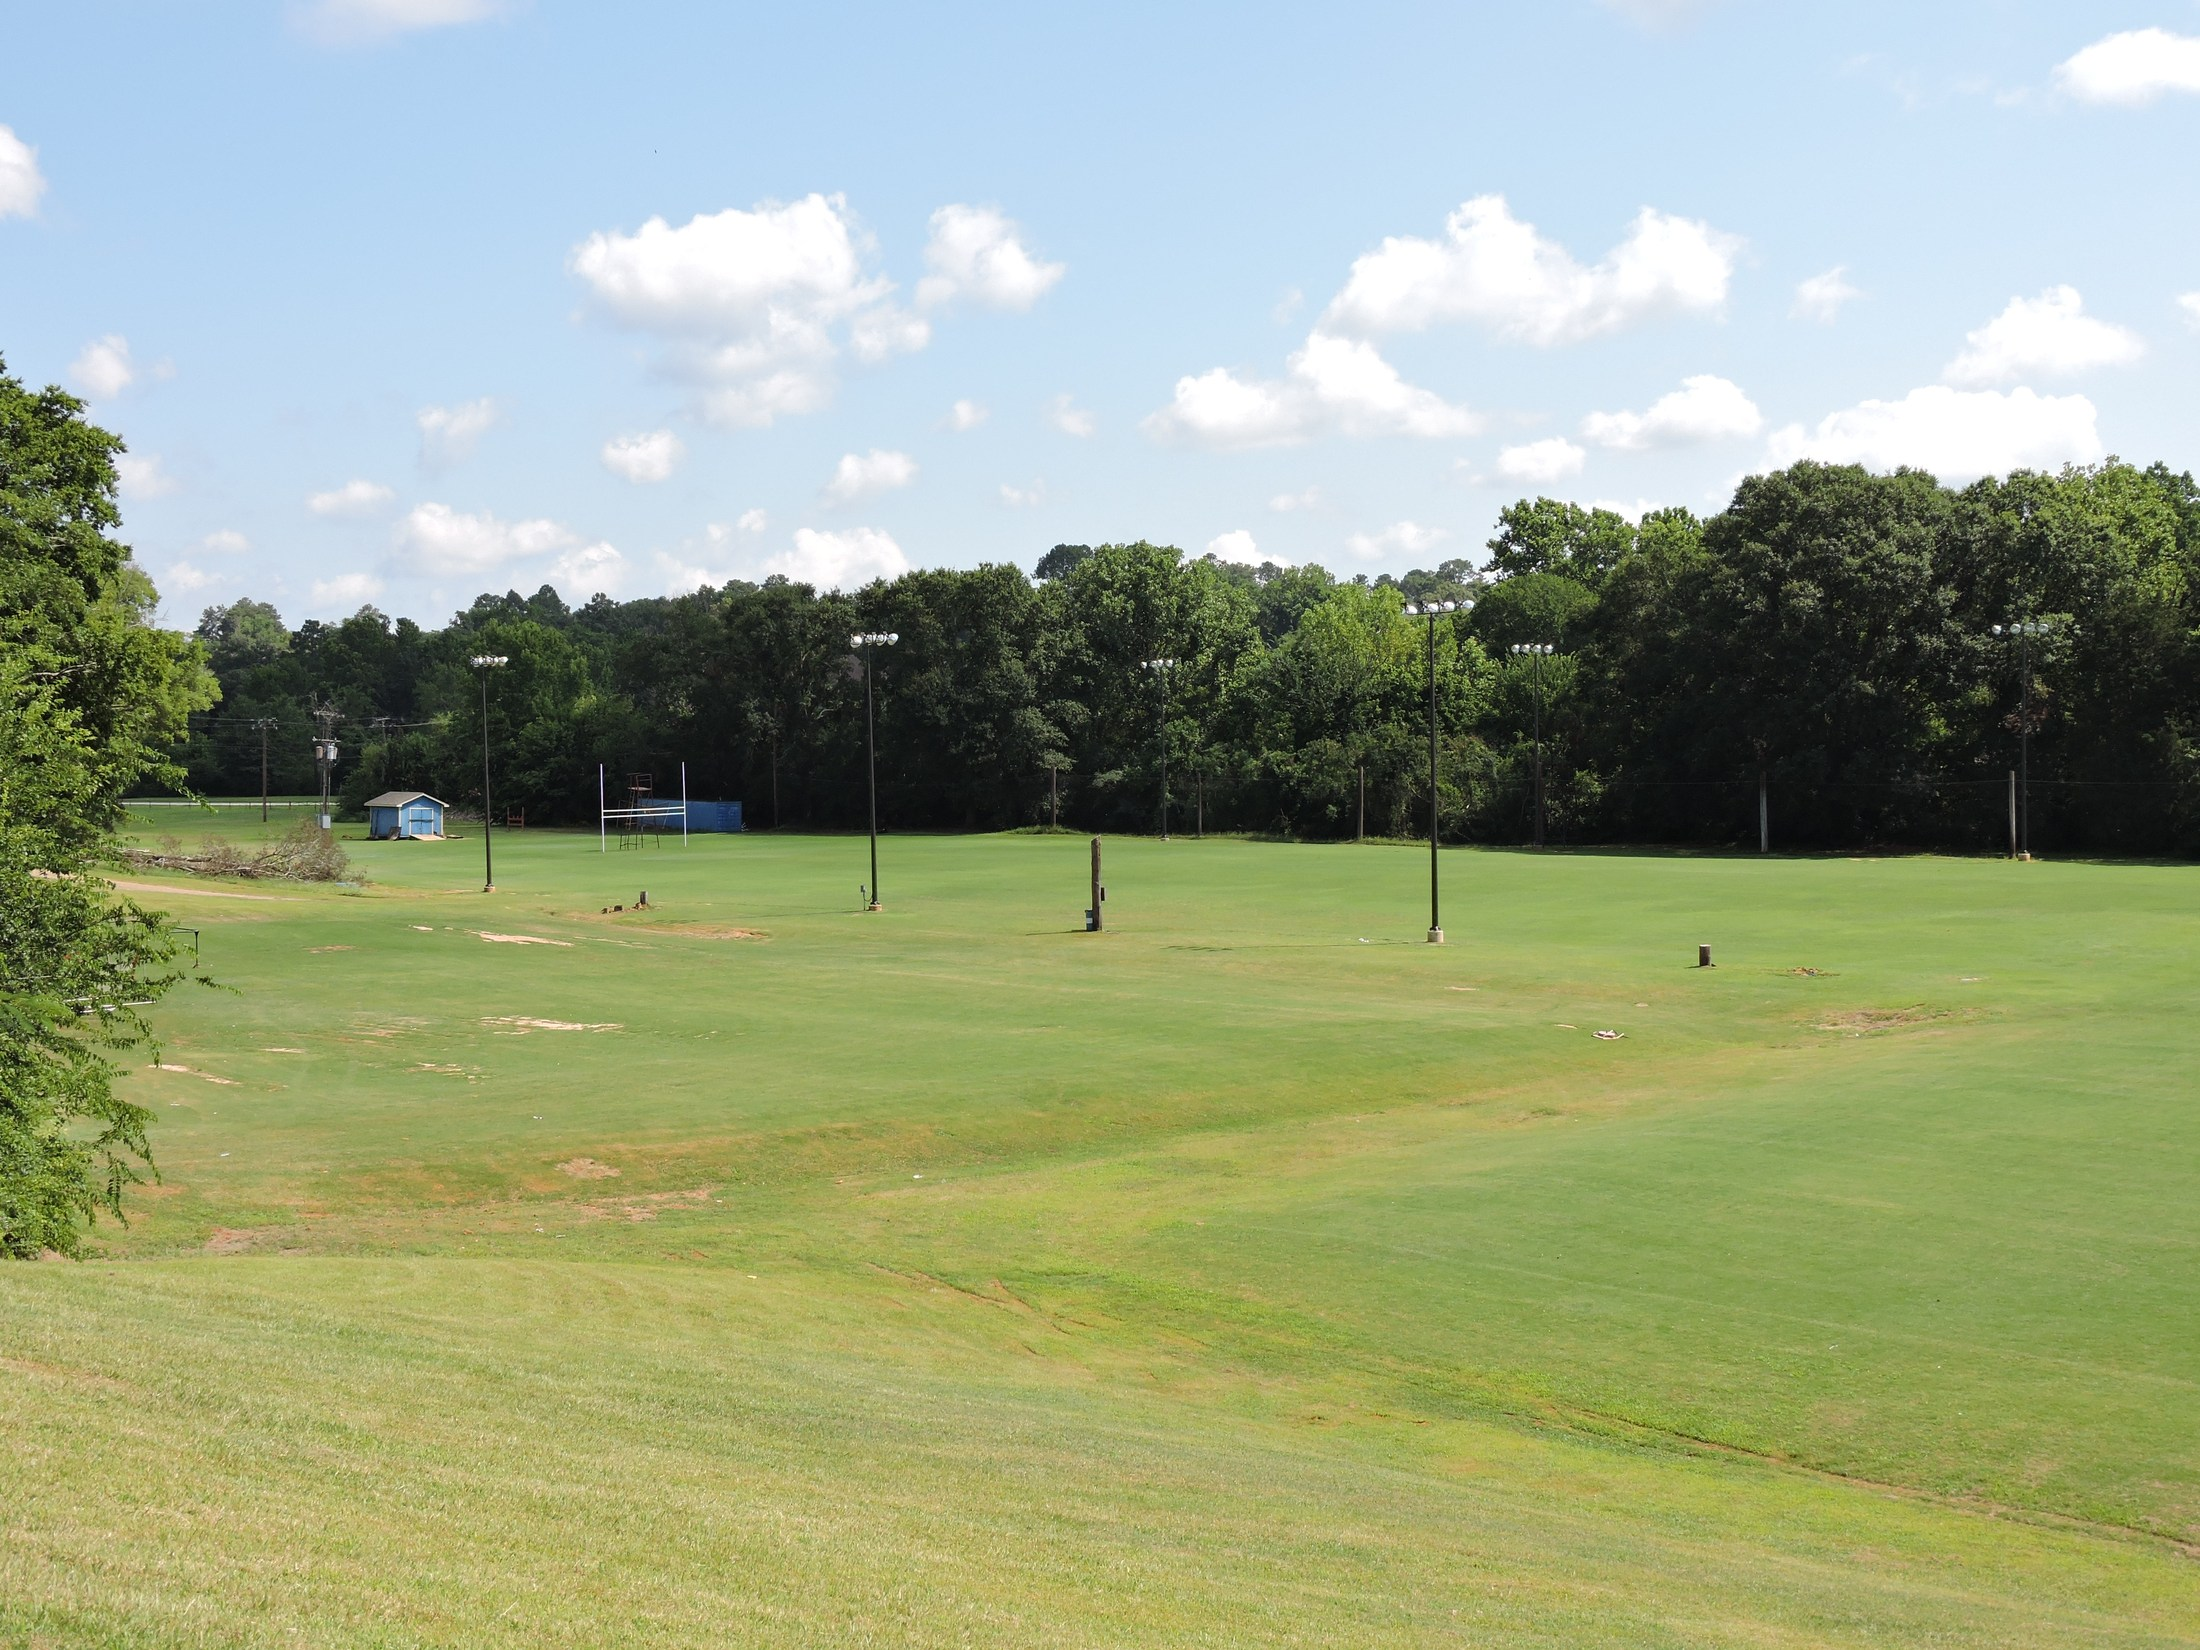 view of the practice field at JHS